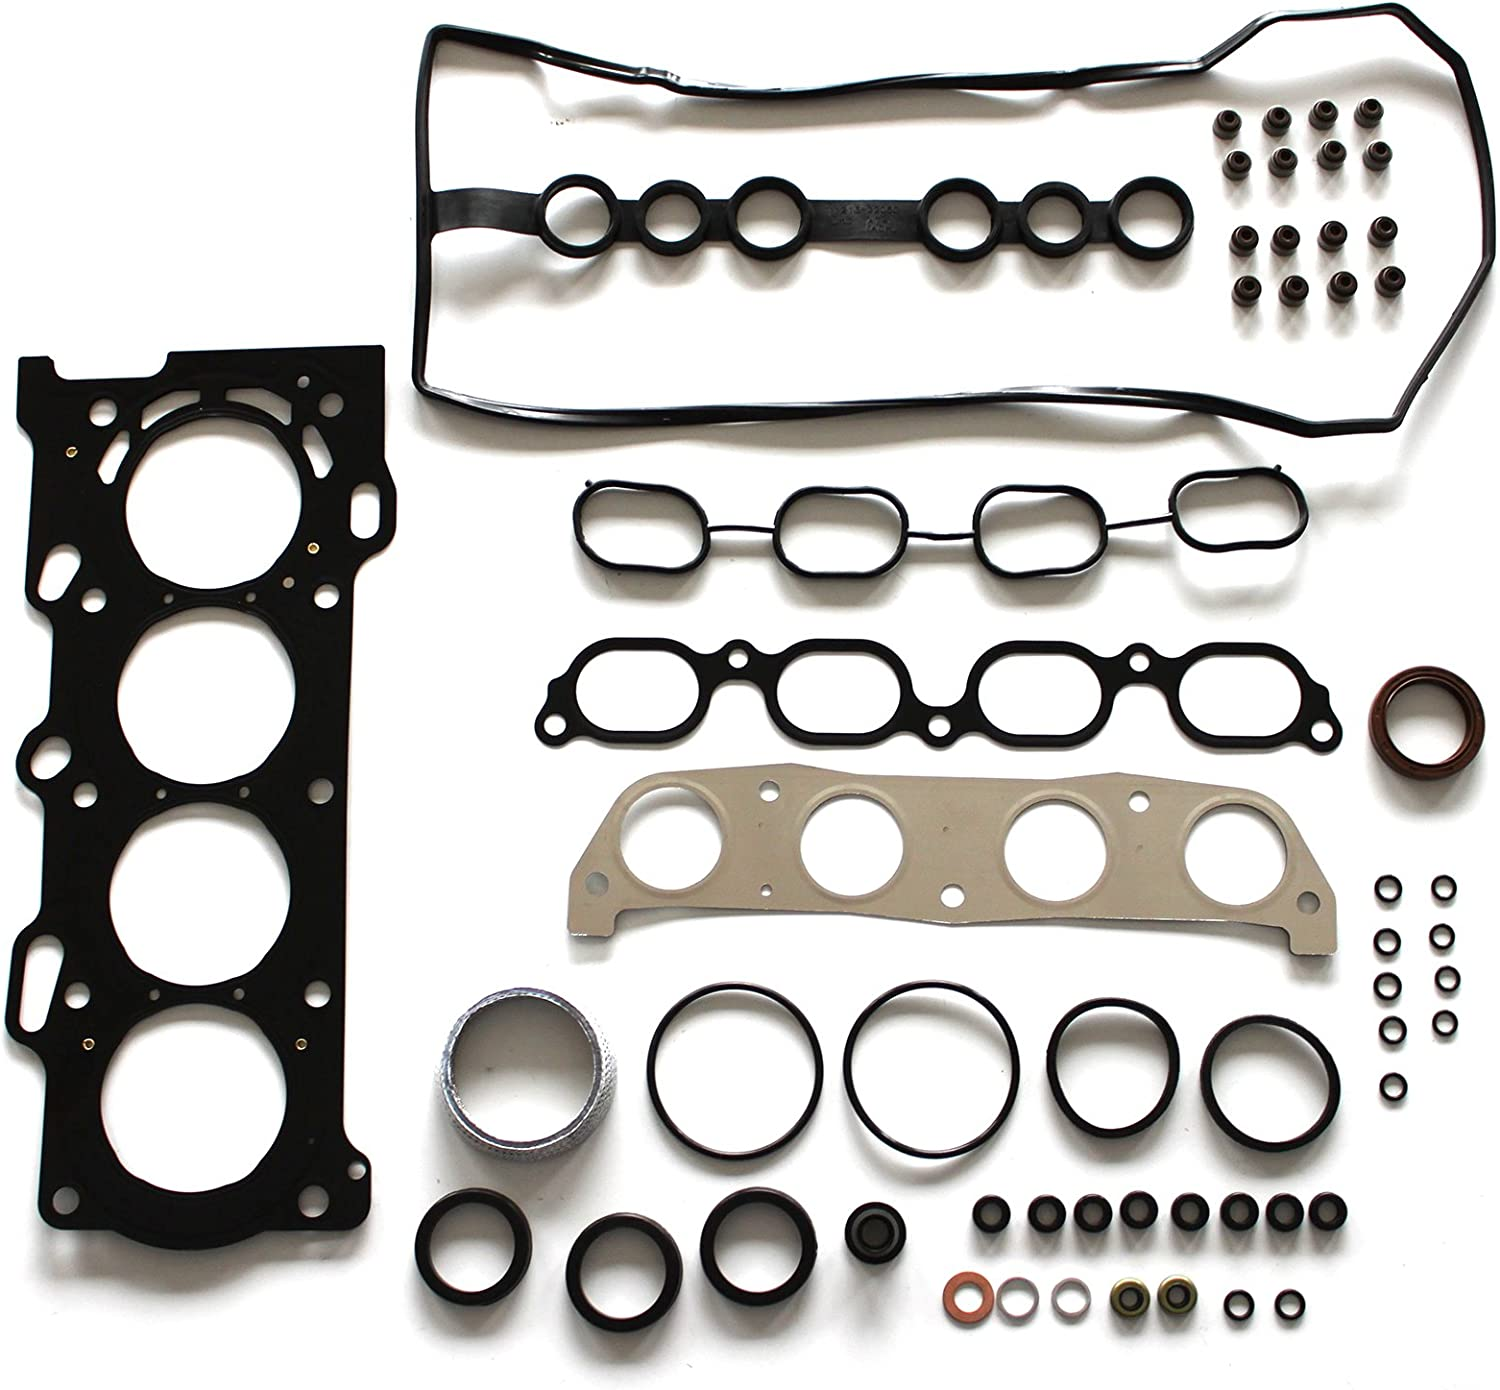 SCITOO Timing Chain Kit Head Gasket Set Replacement for Toyota MR2 Spyder 2-Door Convertible 1.8L Base